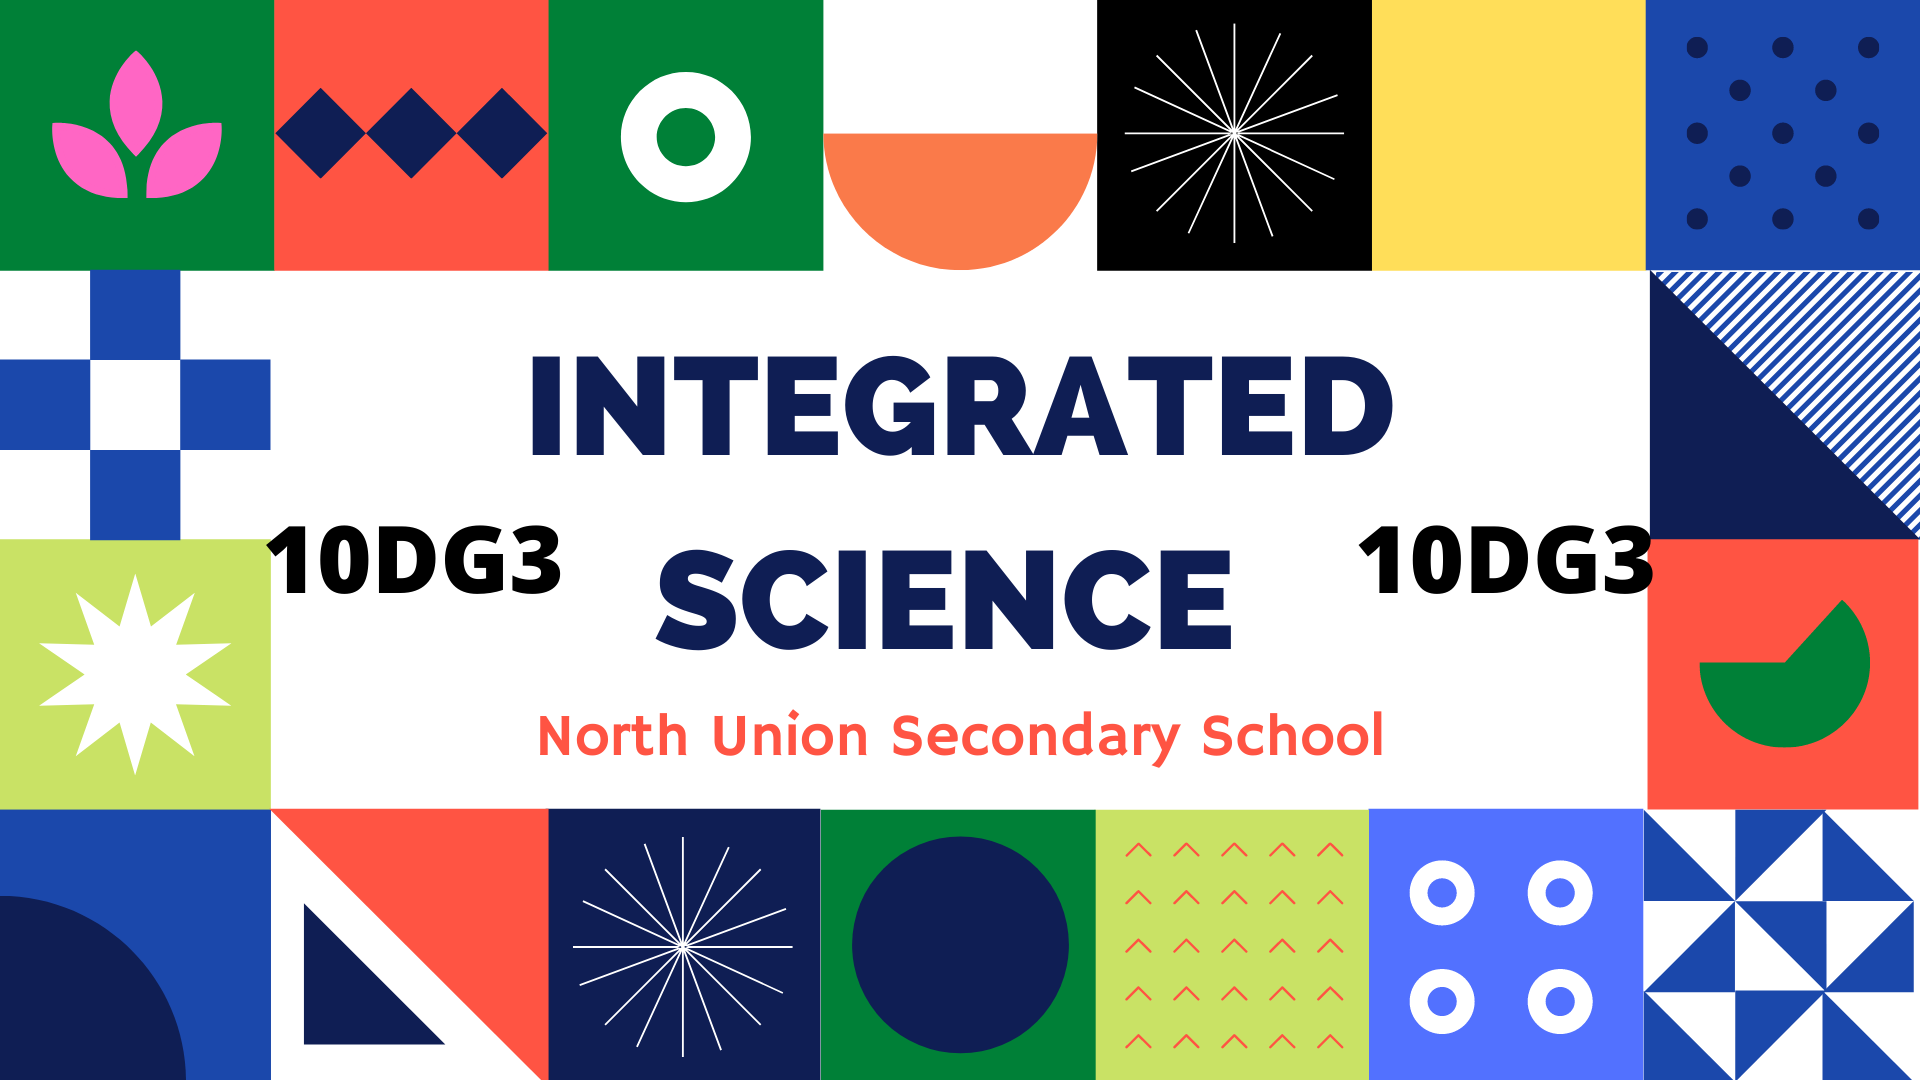 Integrated Science [10DG3]